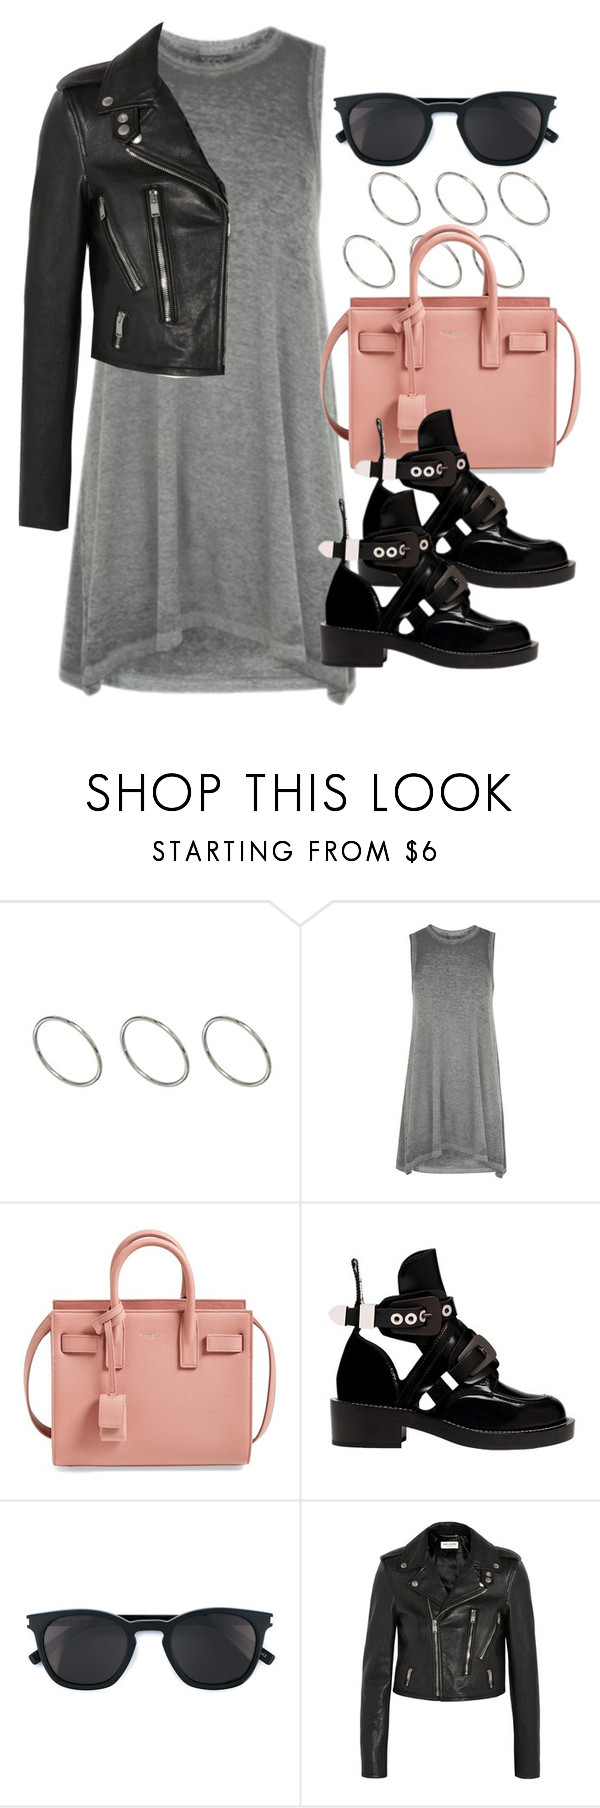 """Sin título #12222"" by vany-alvarado ❤ liked on Polyvore featuring ASOS, Topshop, Yves Saint Laurent and Balenciaga"